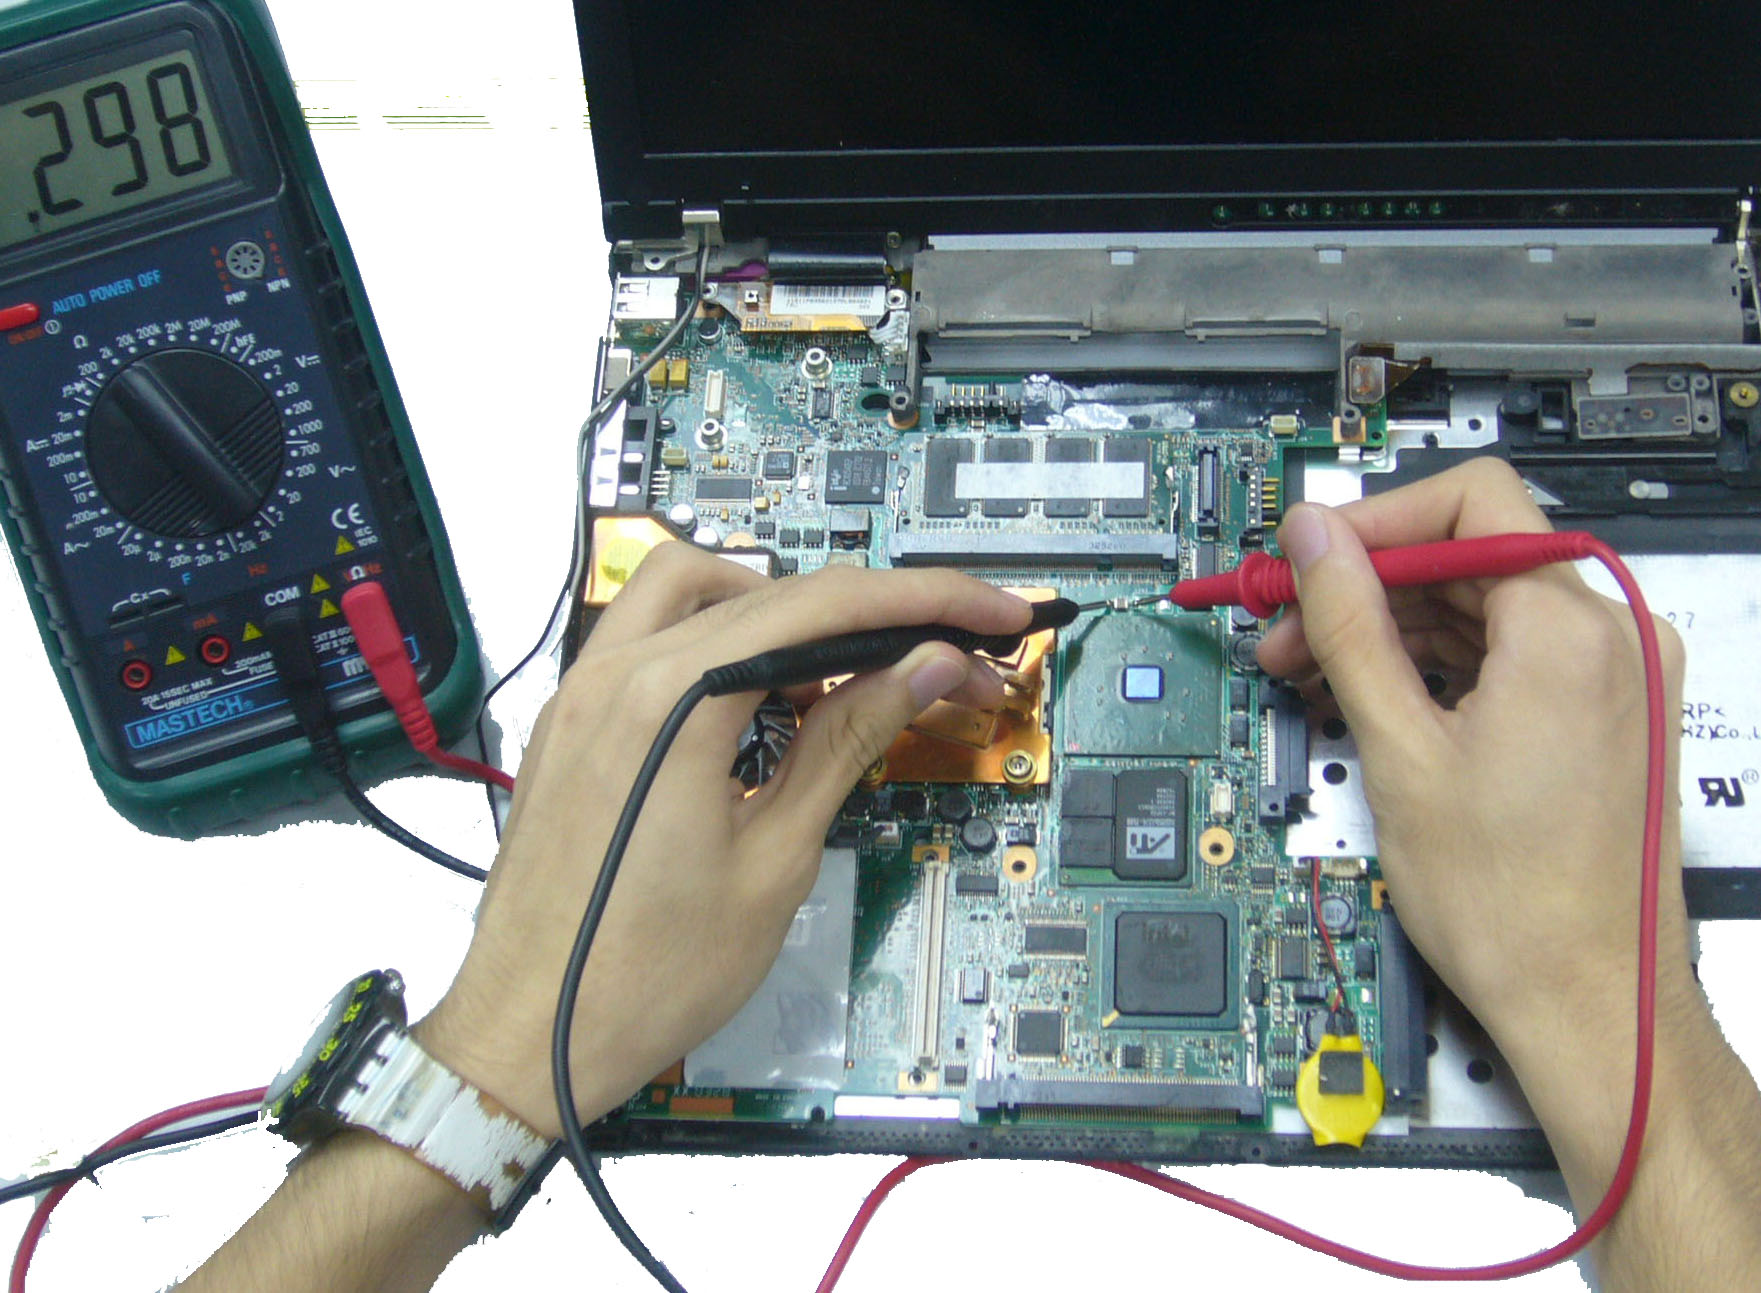 ... PSP 1000/2000/3000 Charge Fuse Repair Service